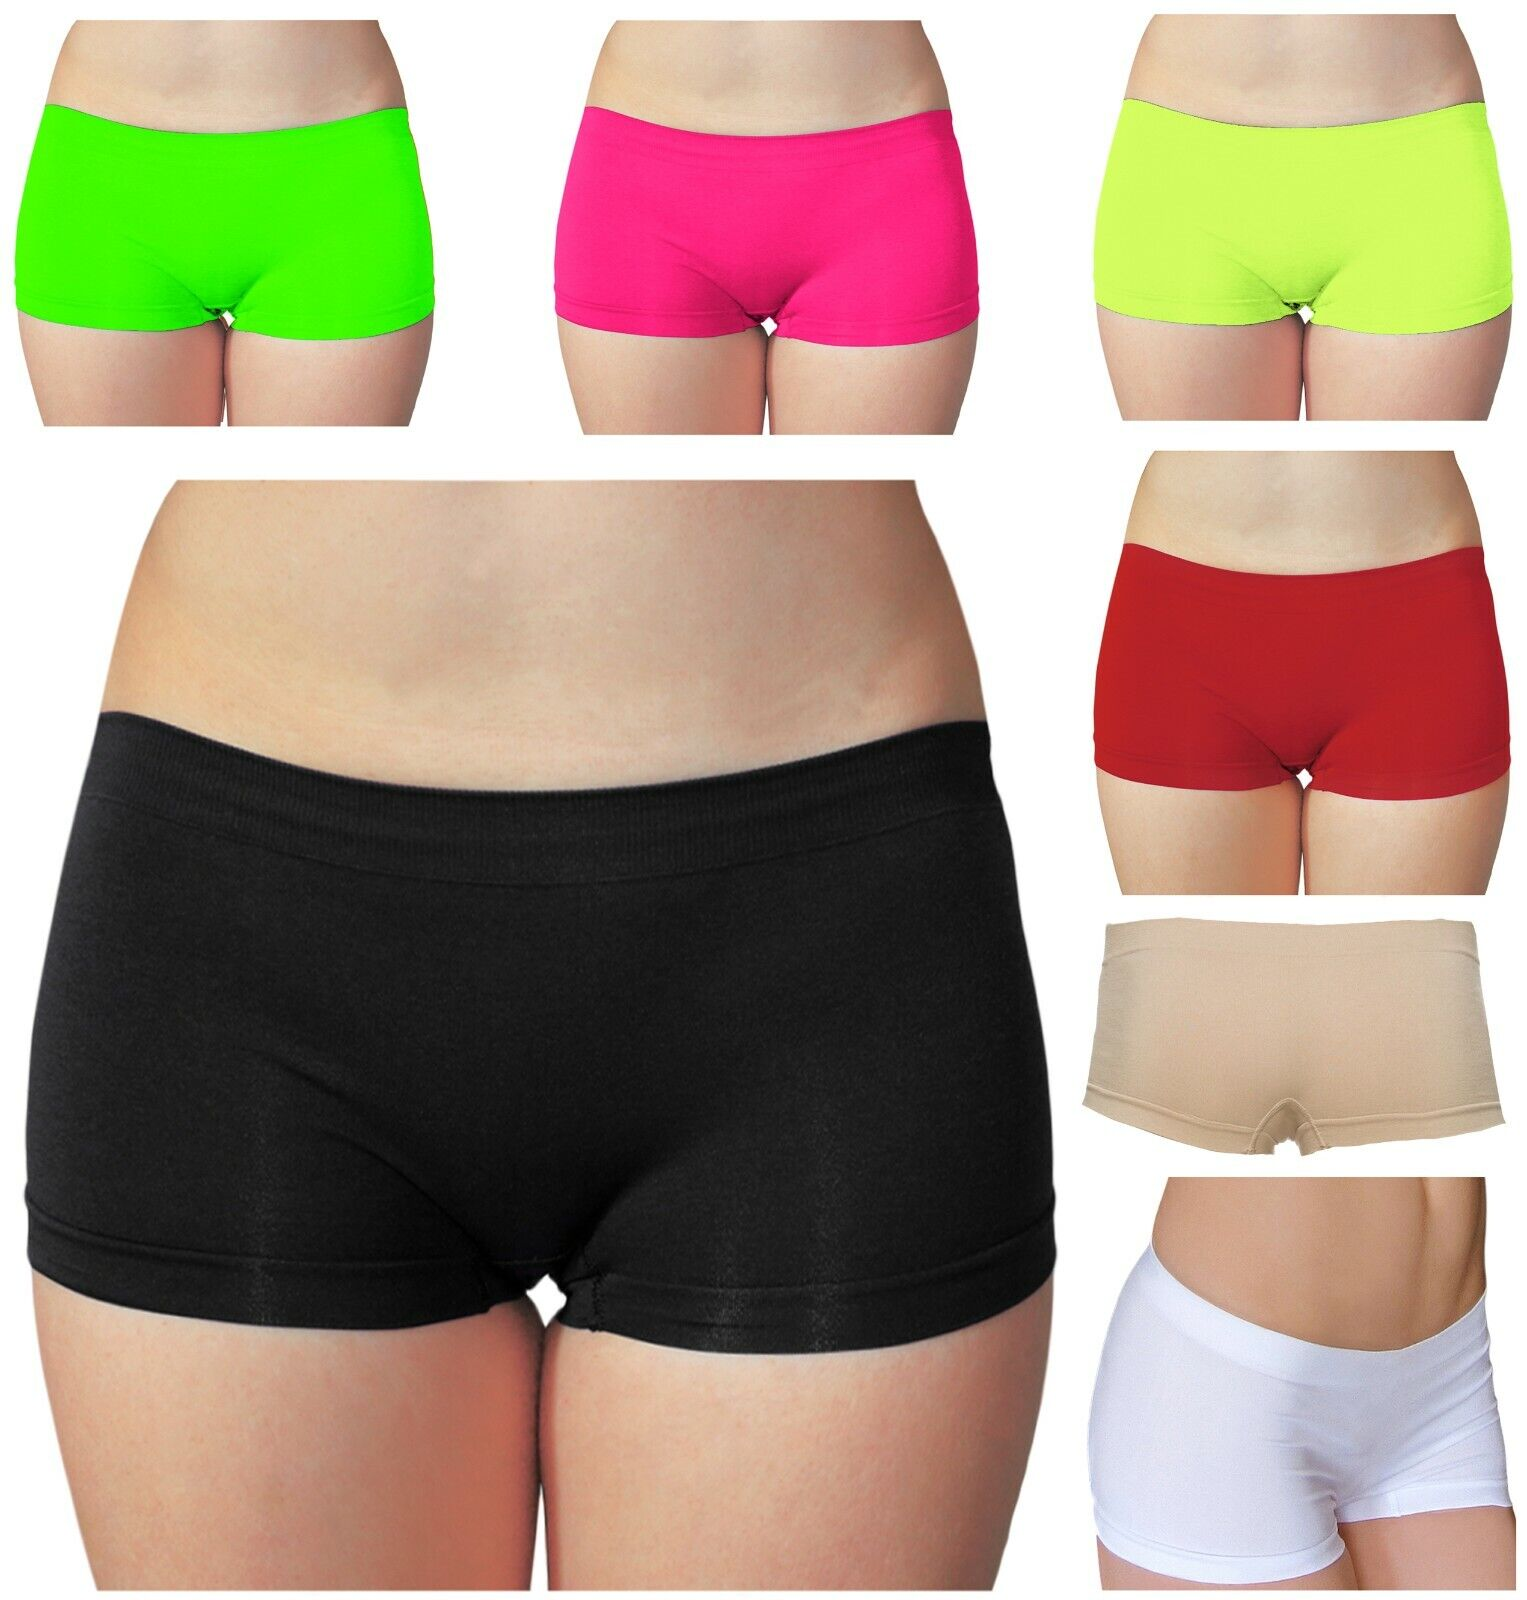 Women's Seamless Stretch Underwear Hot Shorts Booty Boy Short One Size Clothing, Shoes & Accessories